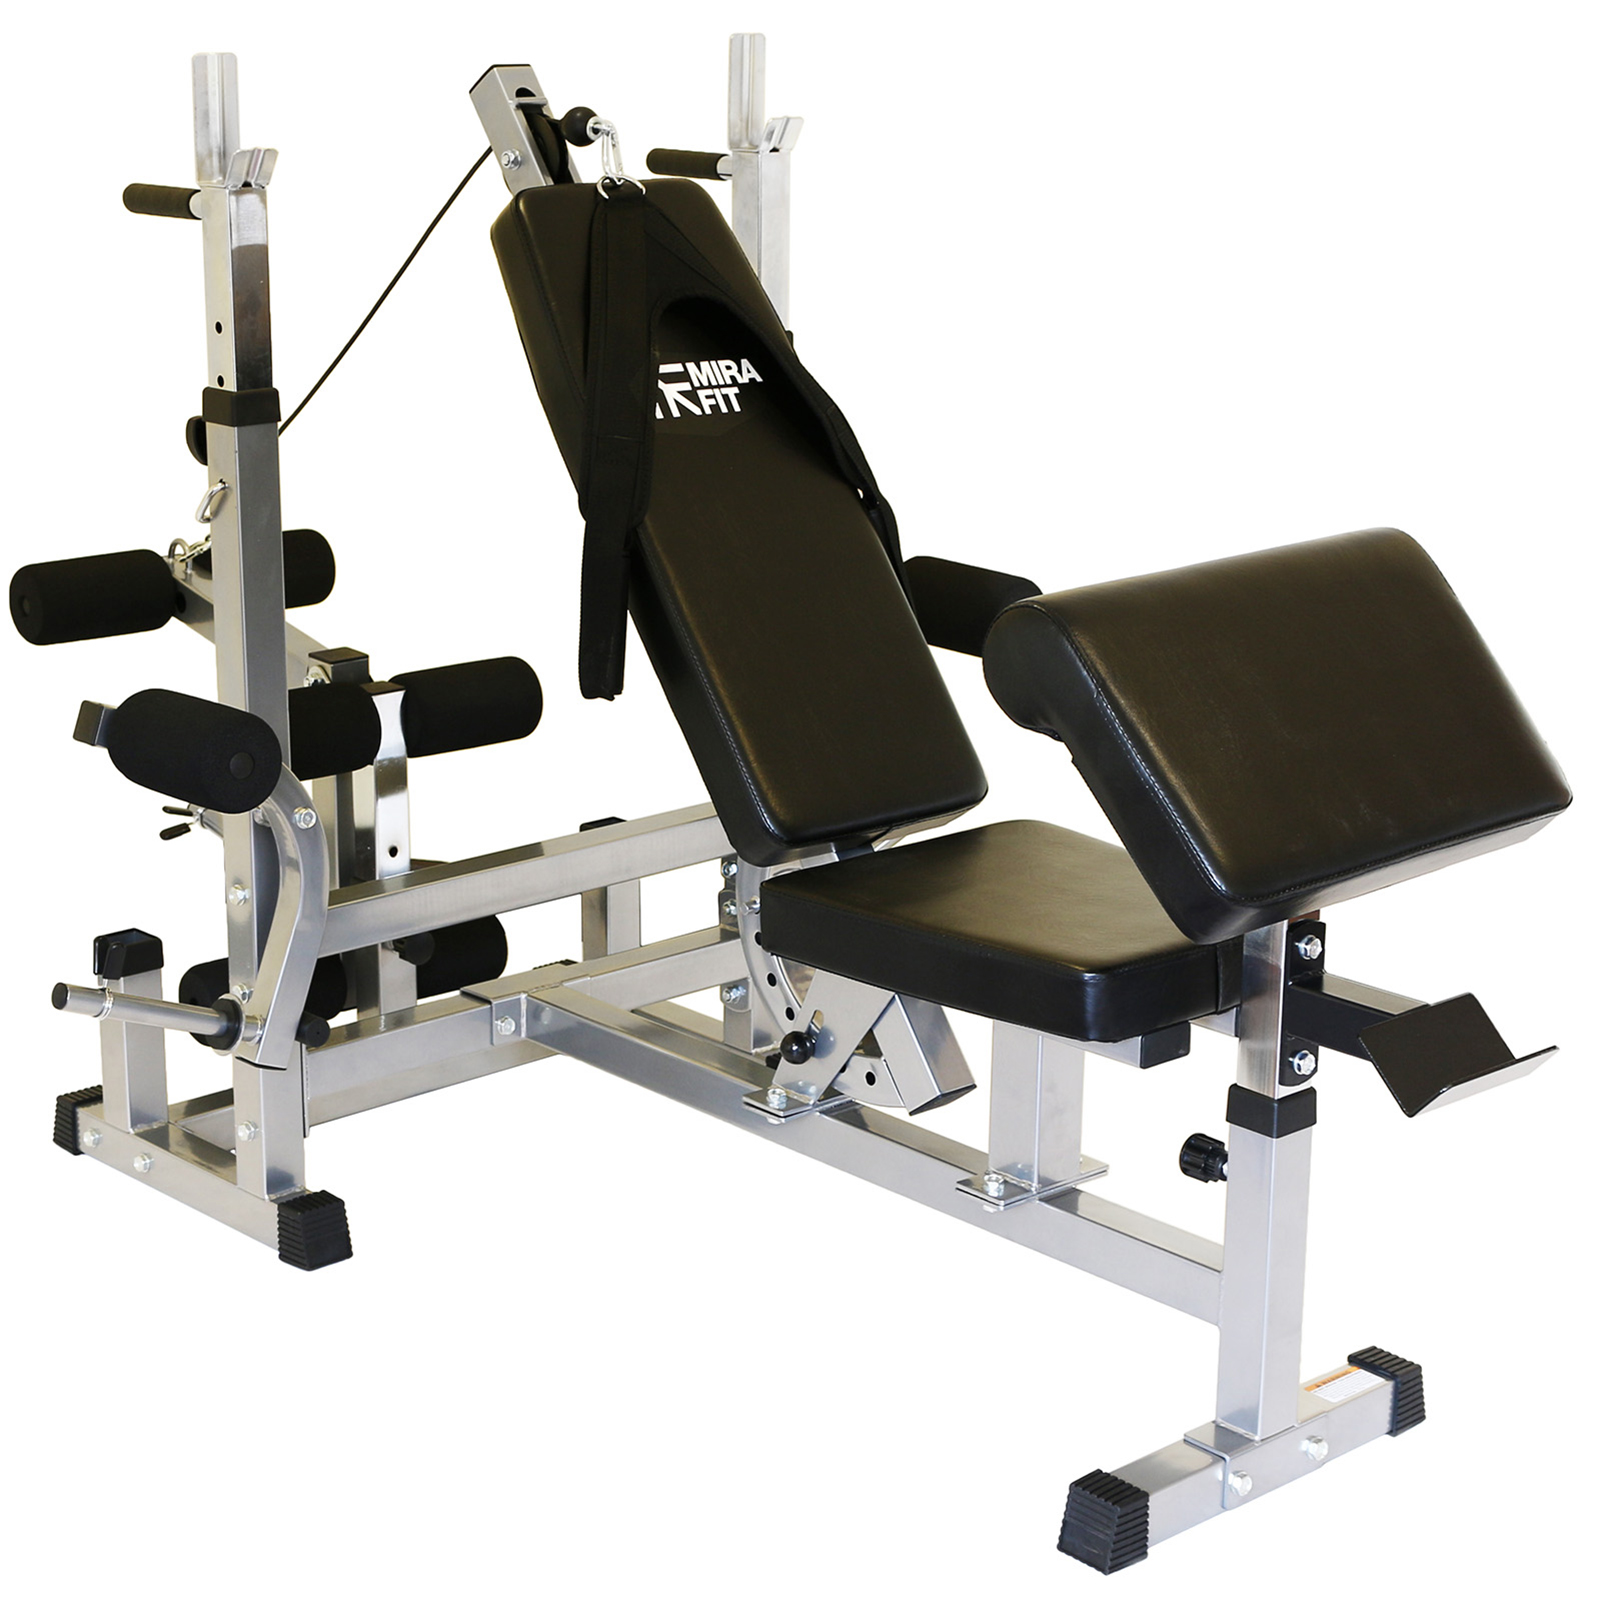 Mirafit Hd Adjustable Weight Bench Home Multi Gym With Dip Station Preacher Curl